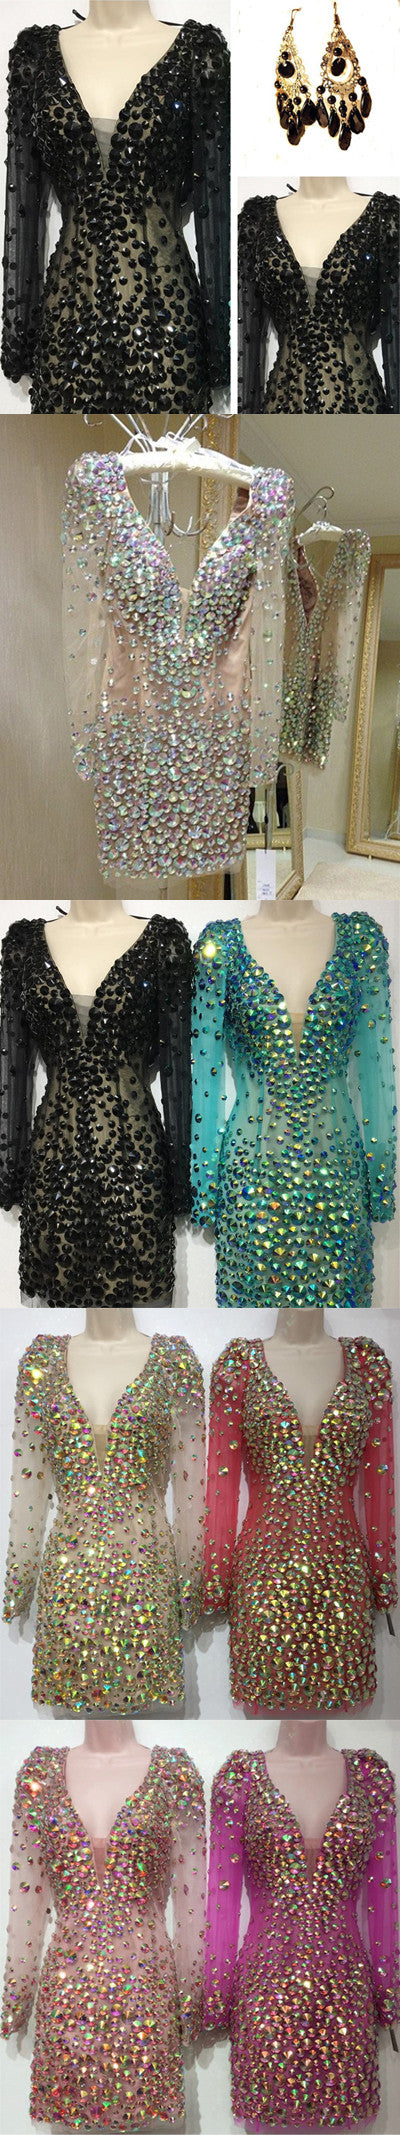 Sexy Clairvoyant Outfit Rhinestone Deep V-neck Deep V-back Long Illusion Sleeve Sheath Homecoming Dress,BD0108